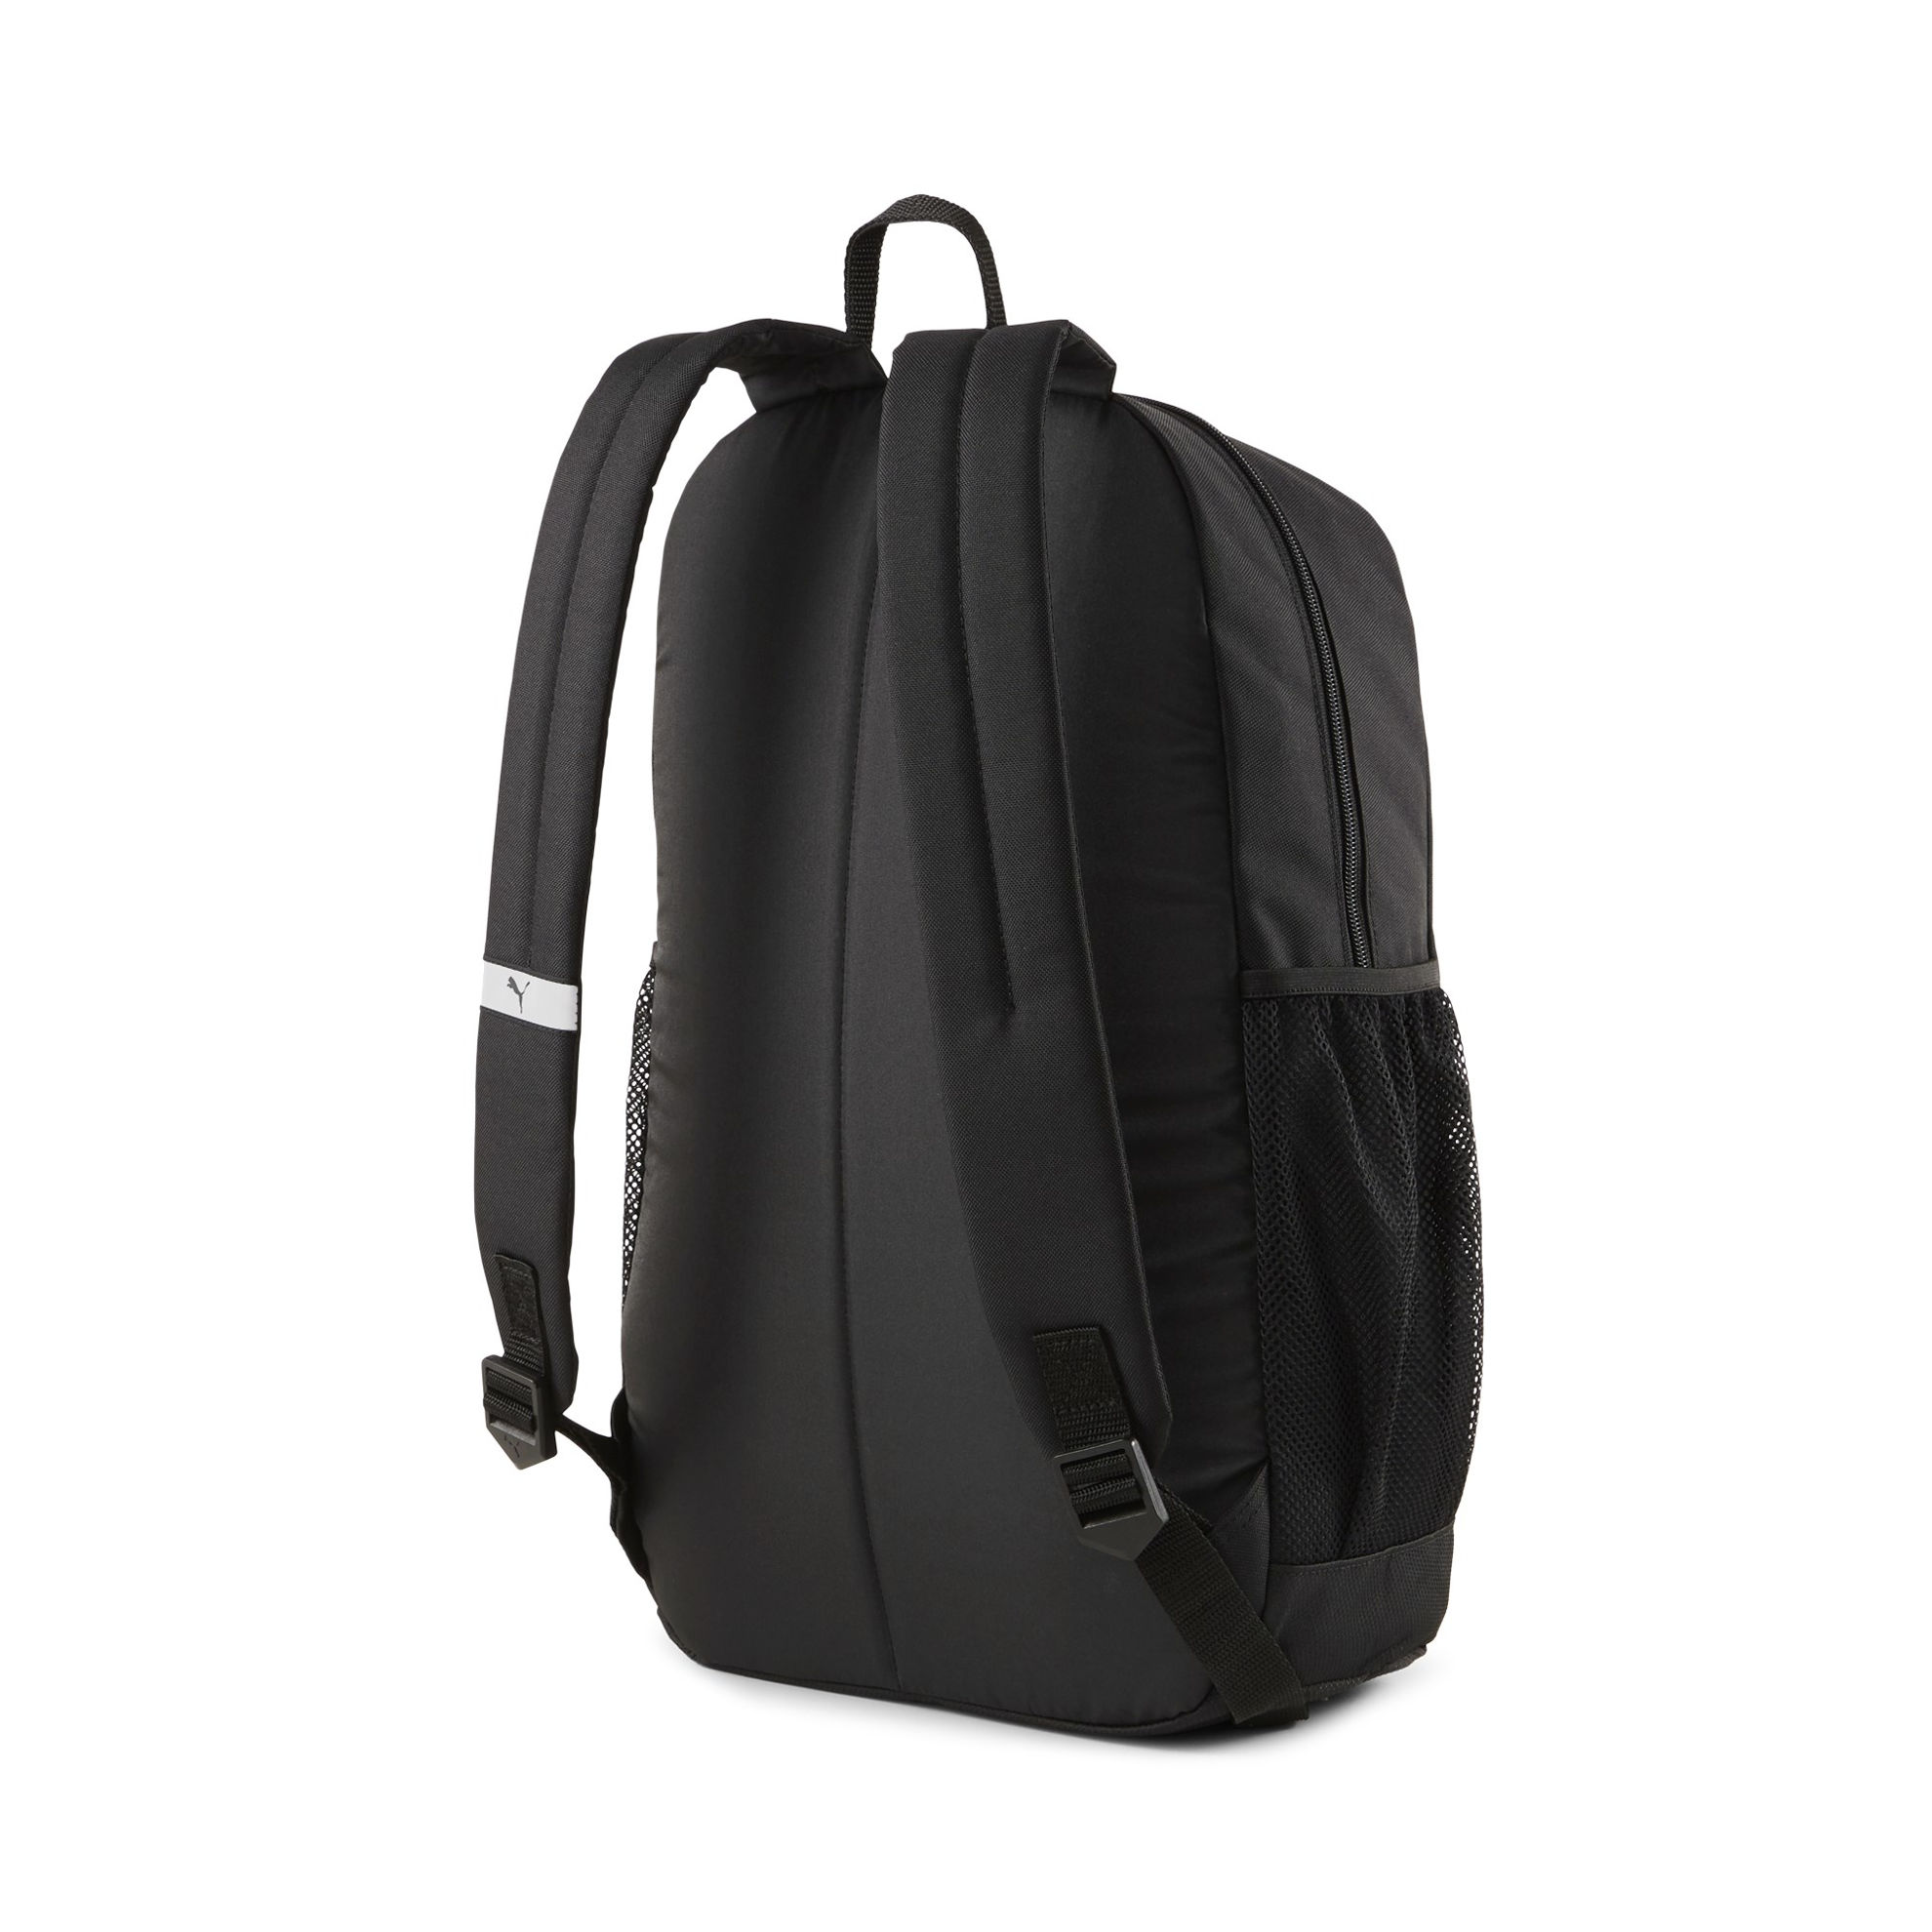 Immagine di PUMA - ZAINO PLUS BACKPACK II BLACK